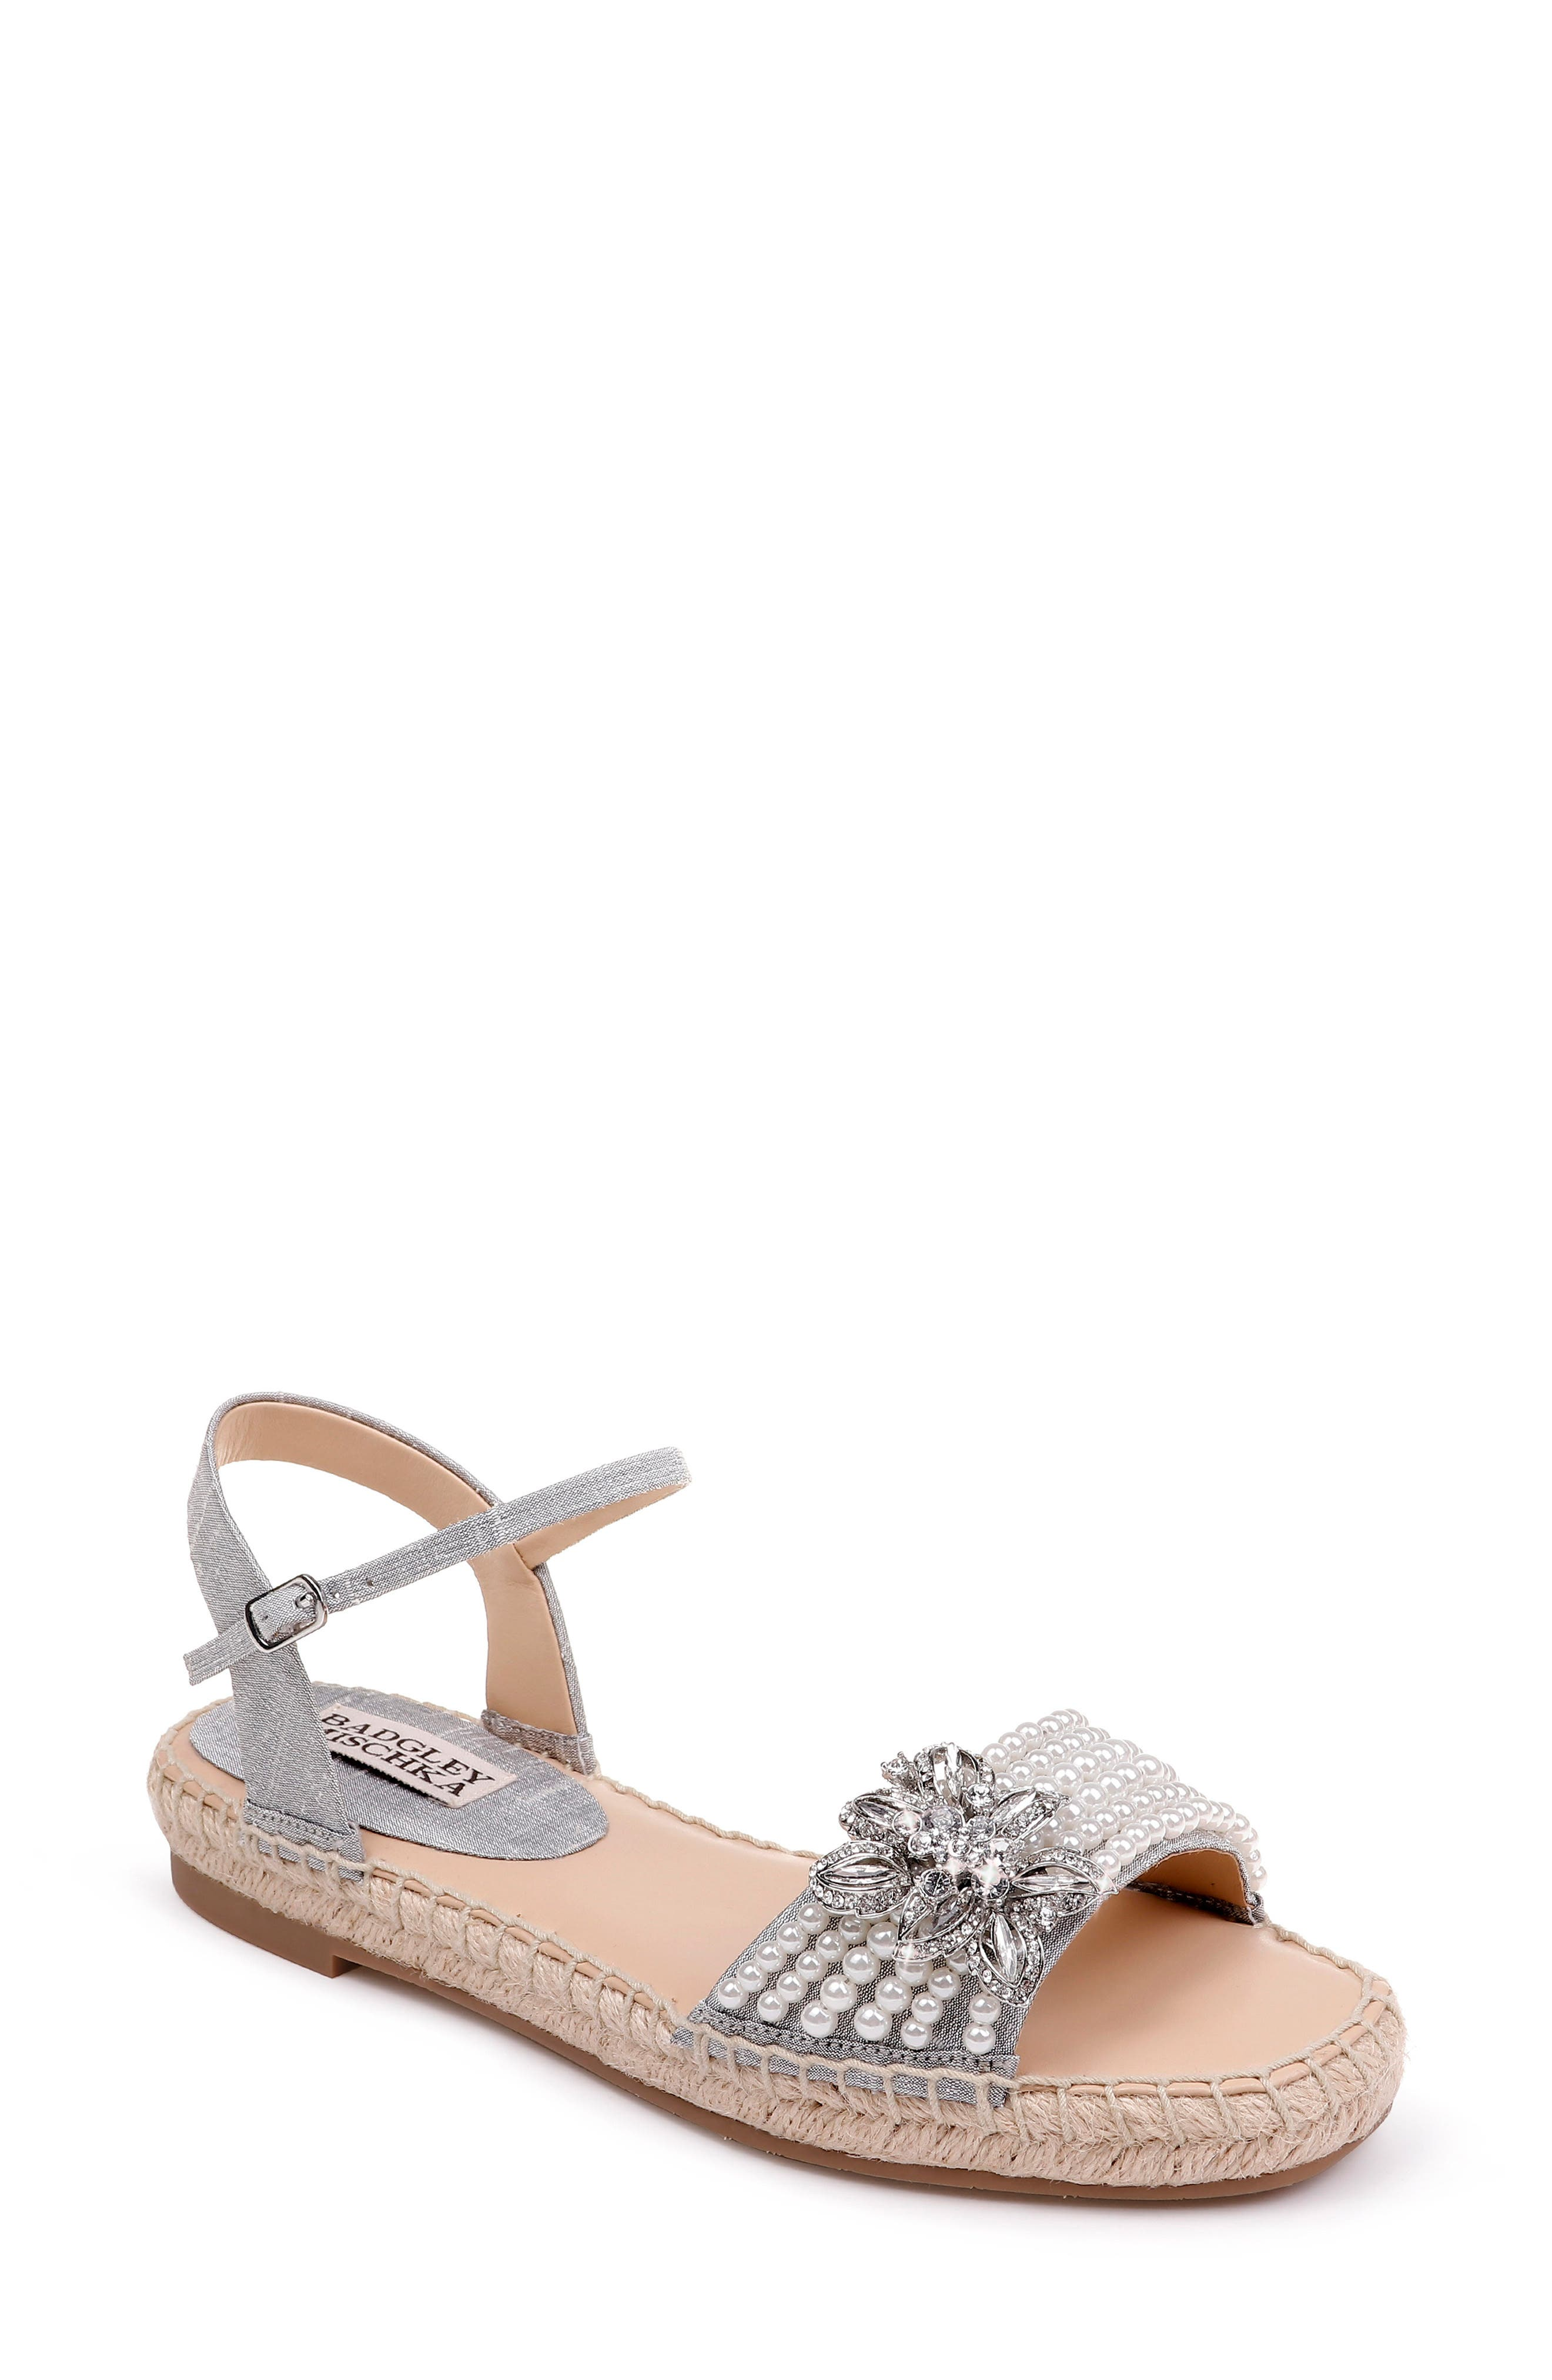 Badgley Mischka Leandra Espadrille Sandal,                             Main thumbnail 1, color,                             SILVER FABRIC